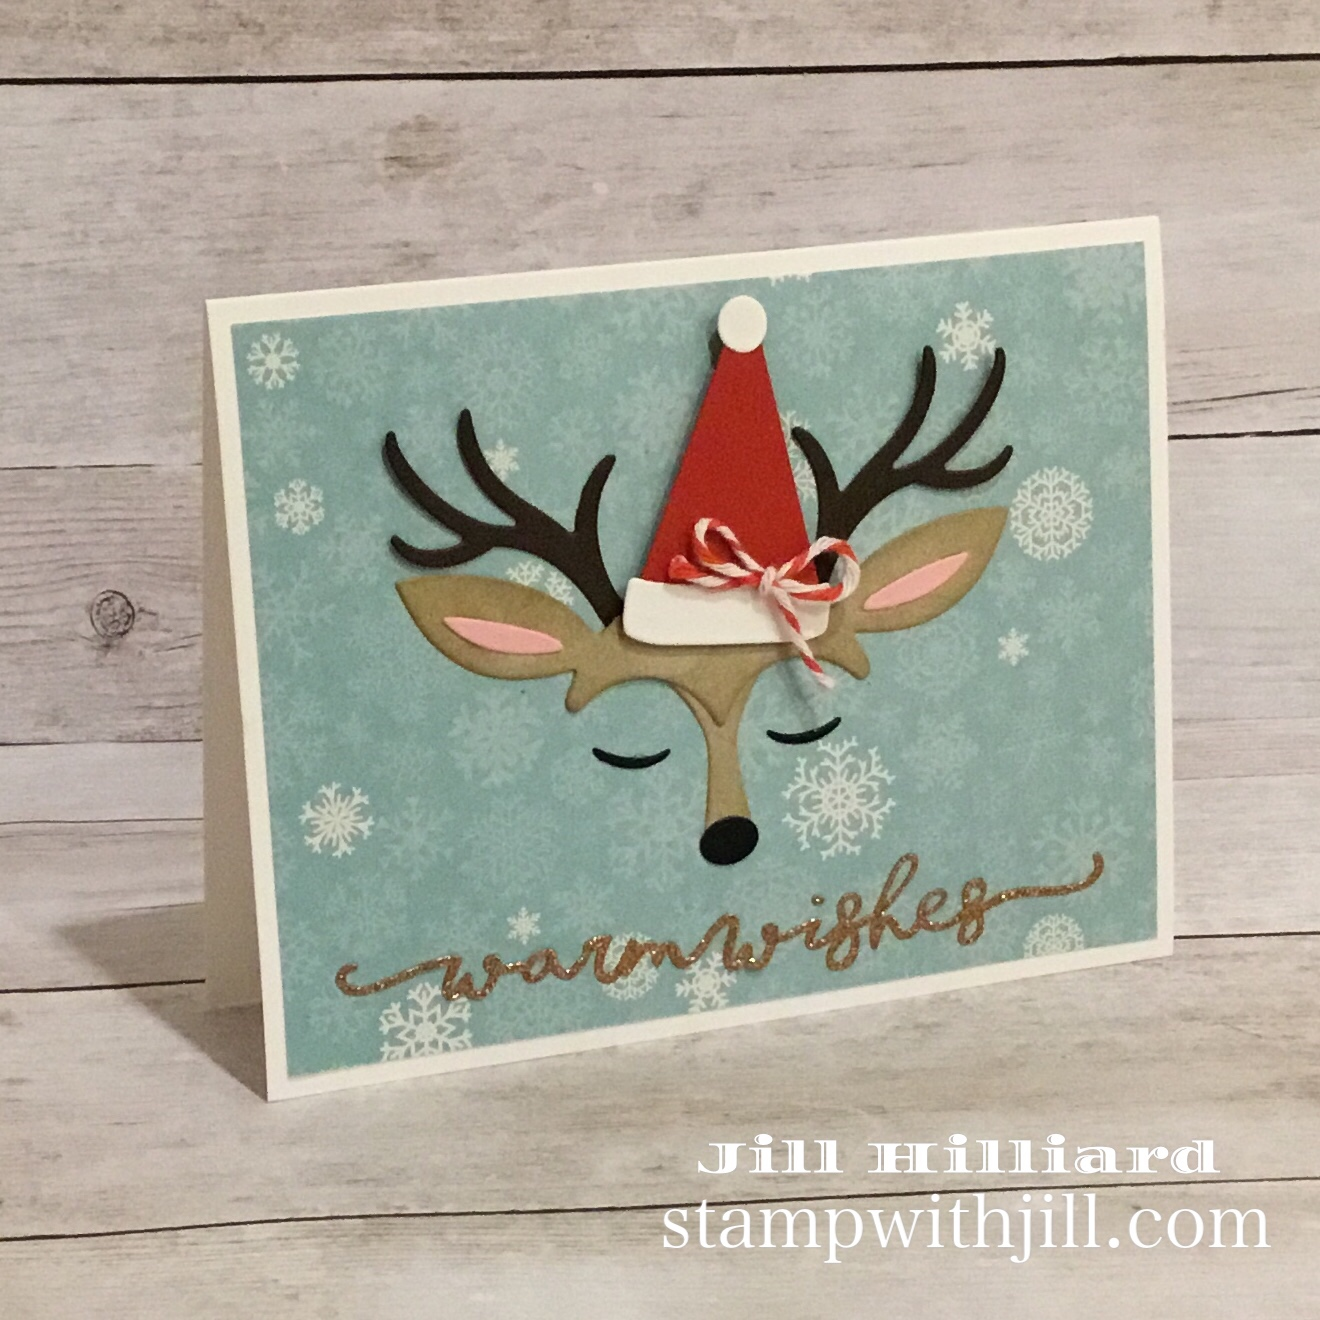 Spellbinders card kit and reindeer builder kit die set, Stamp with Jill